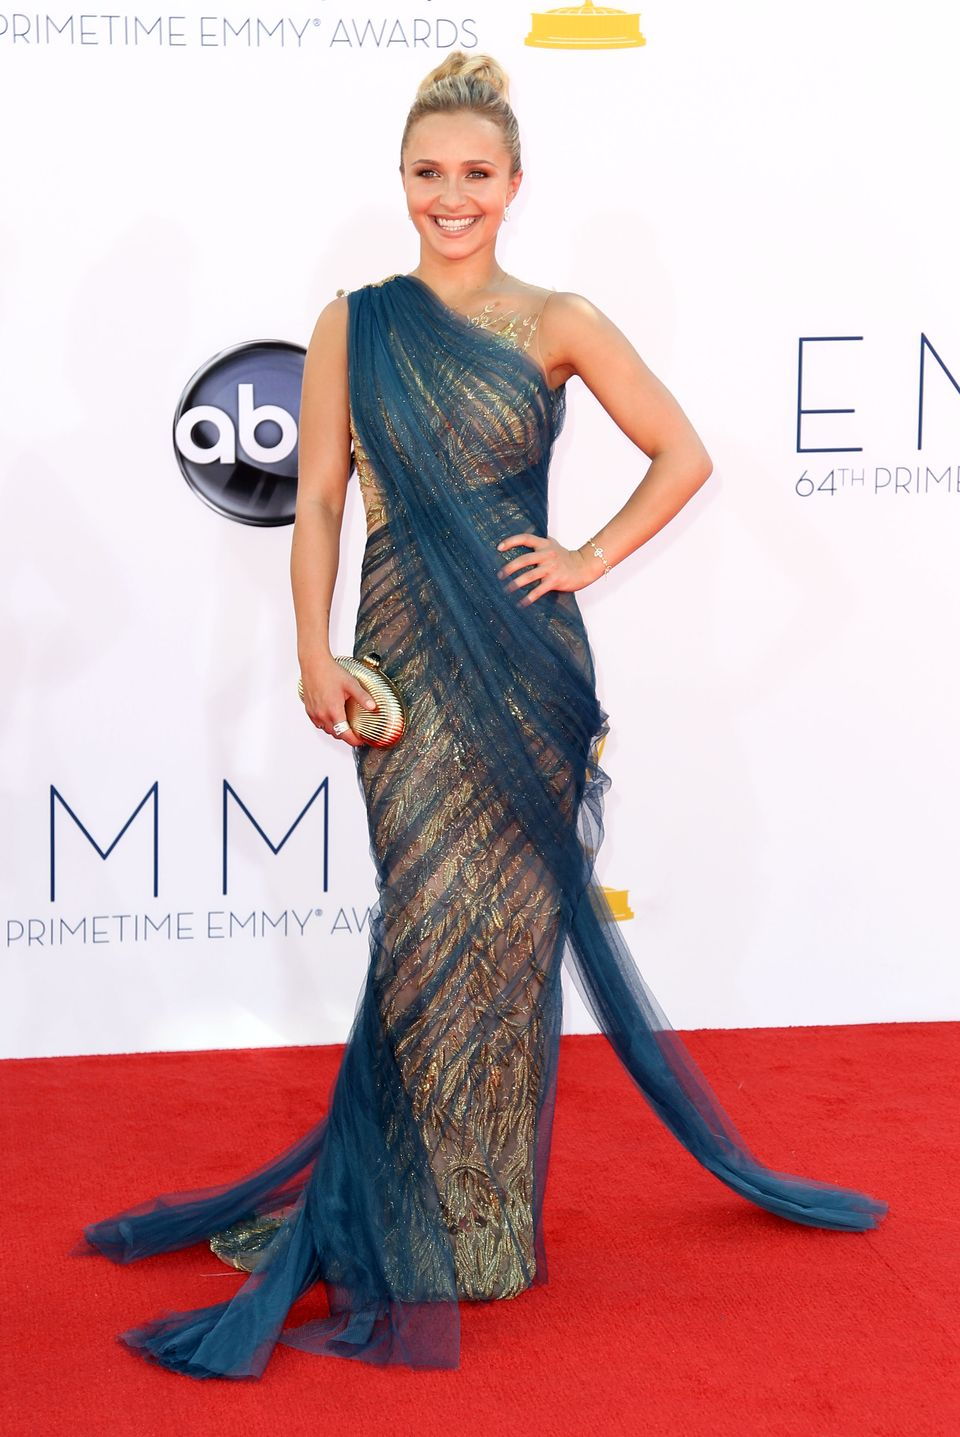 Hayden Panattiere - 2012 Emmy Awards, Red Carpet Looks